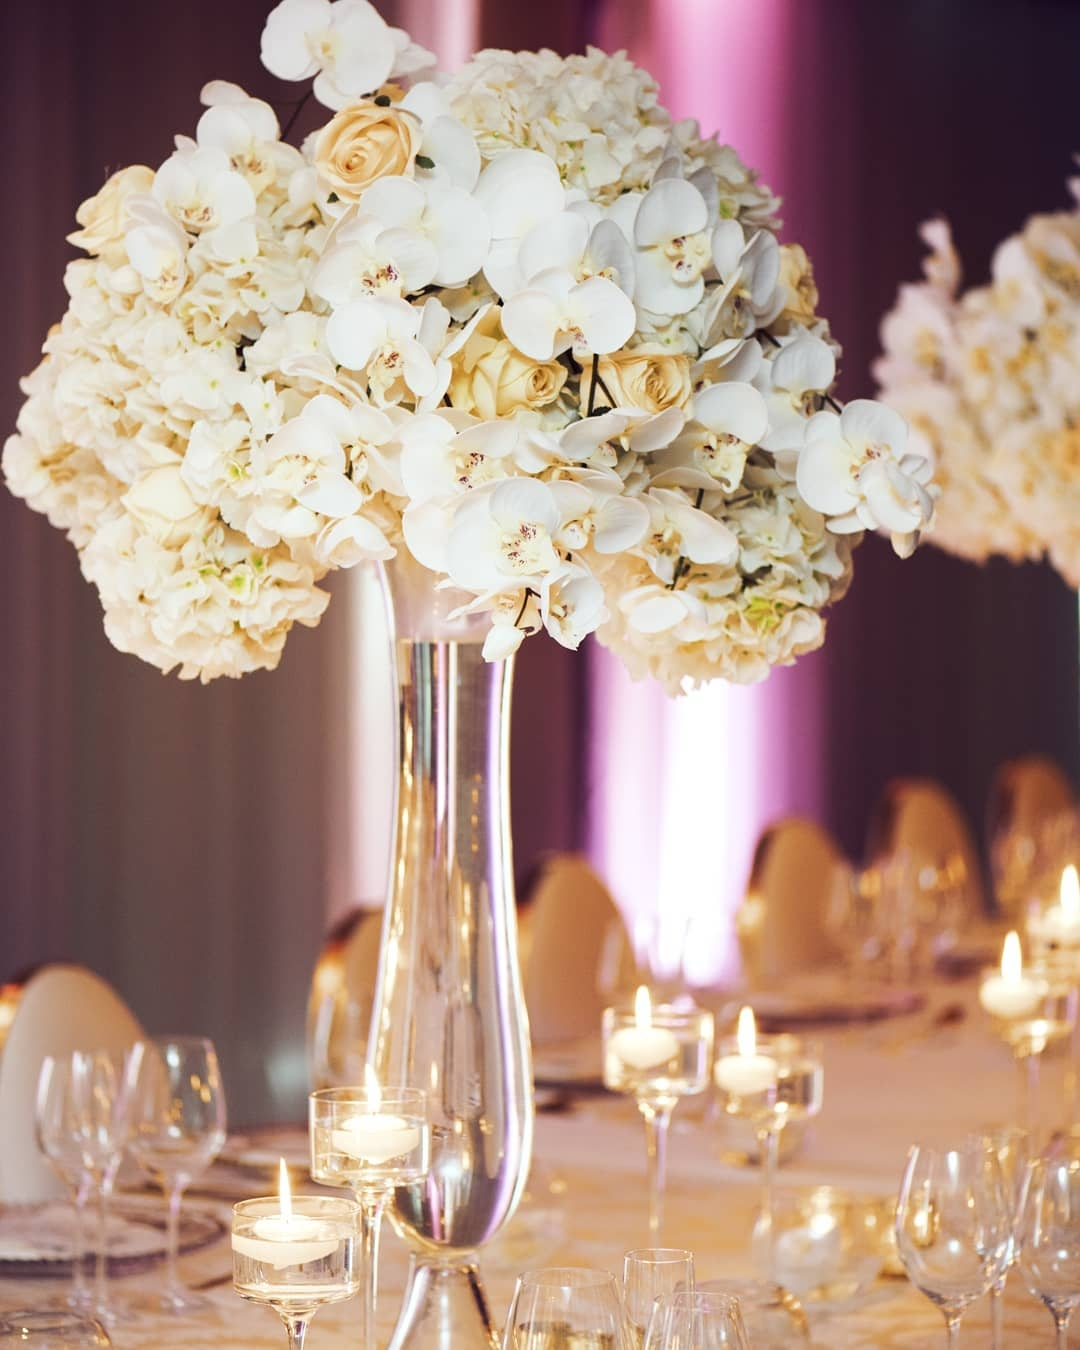 Afmena Events London Wedding Floral Decor and Venue Styling